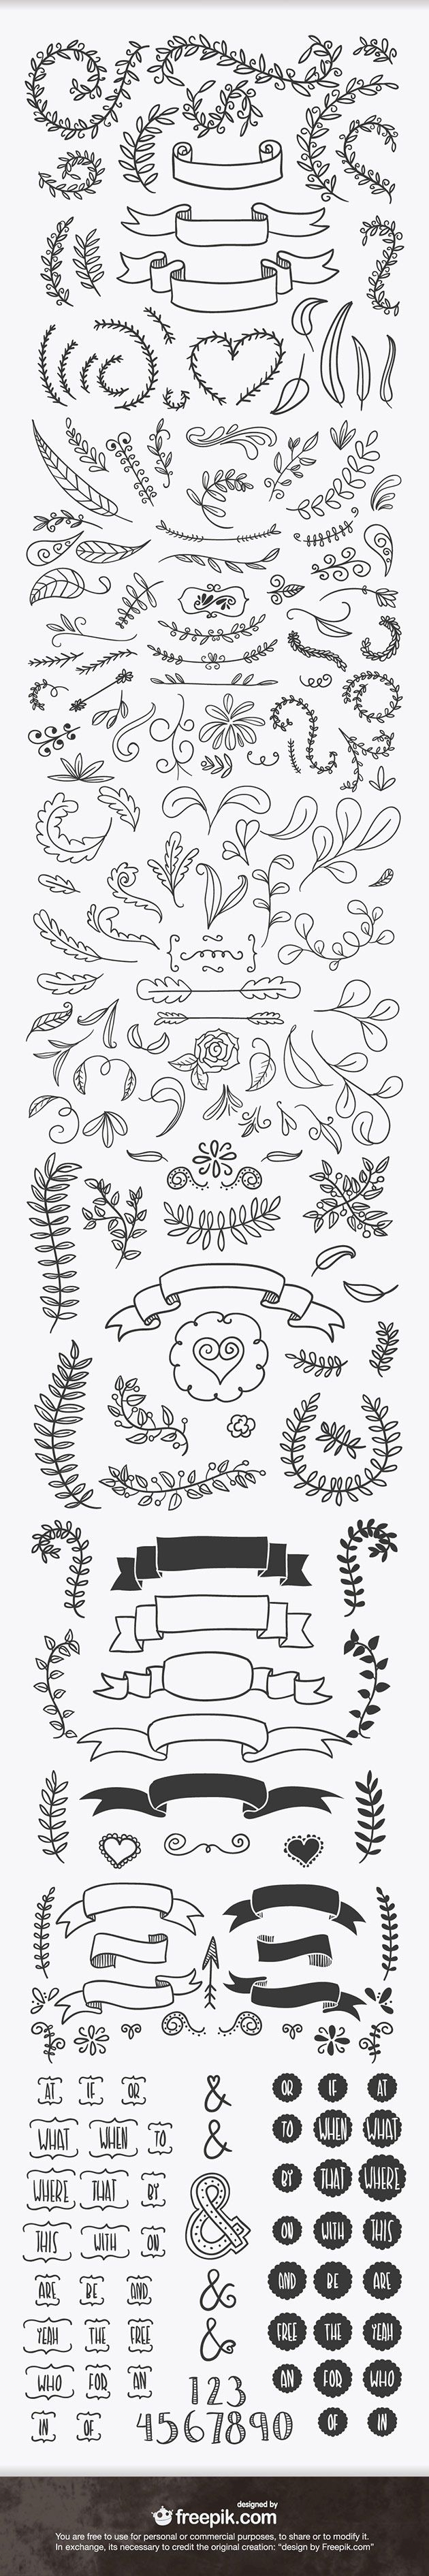 handsketched_design_elements_ribbons_laurels_preview